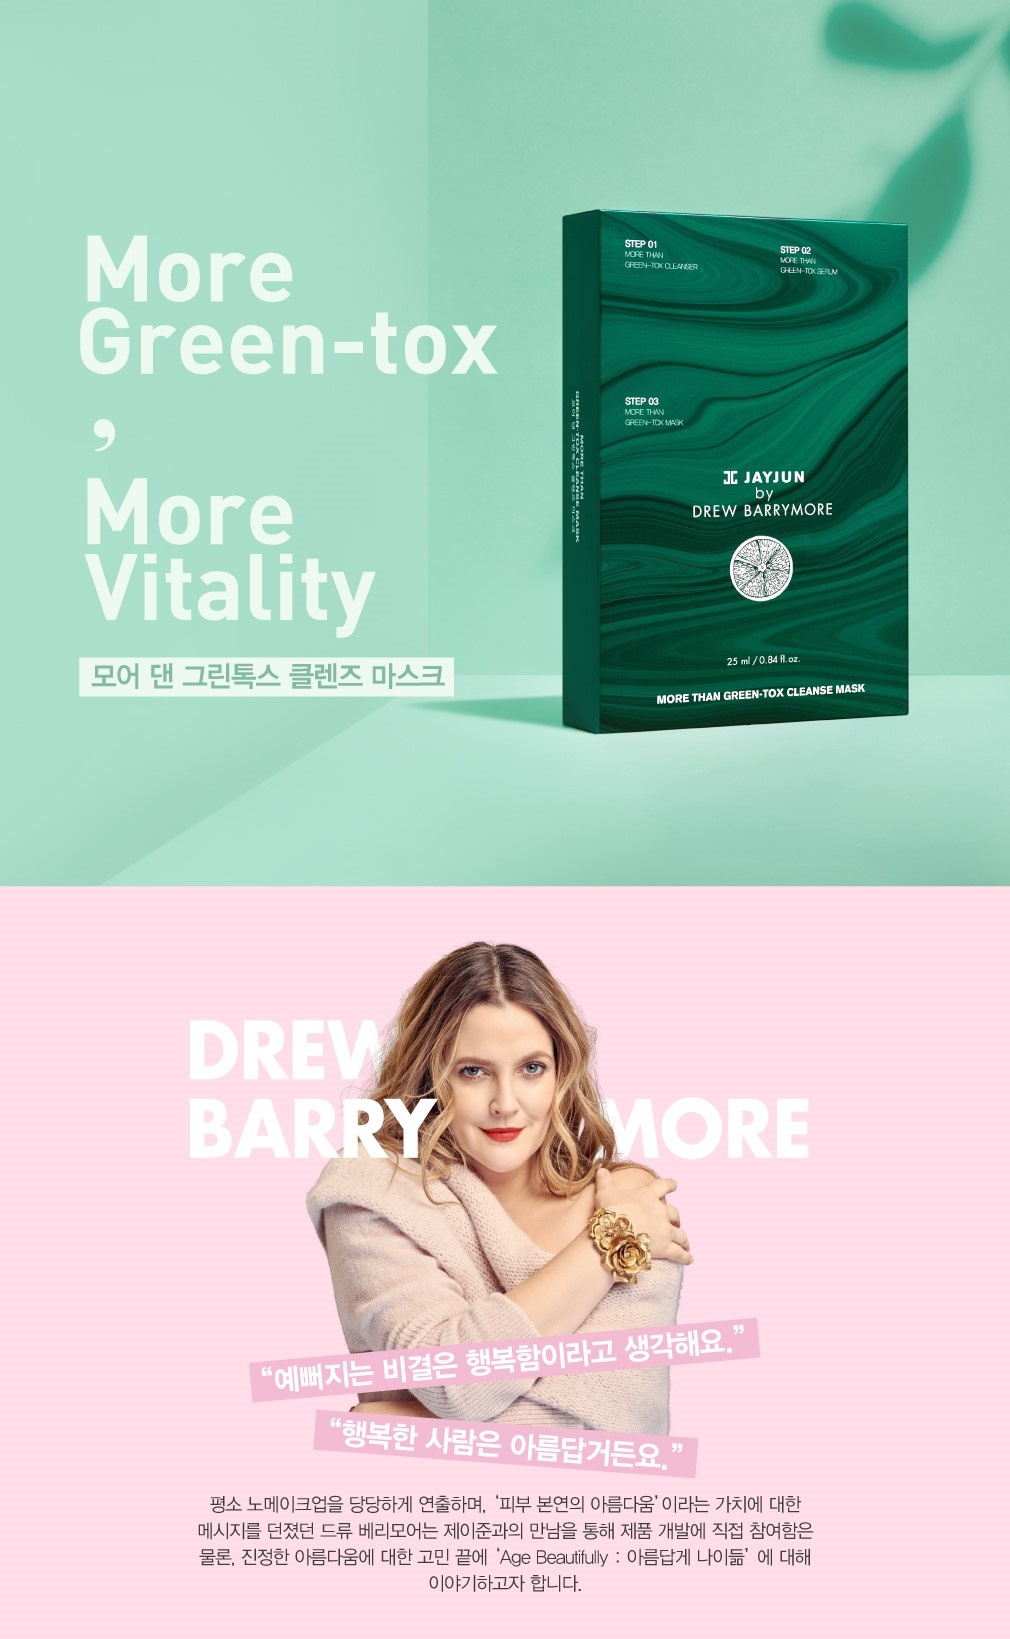 More Than Green-Tox Cleanse Mask by Drew Barrymore-2